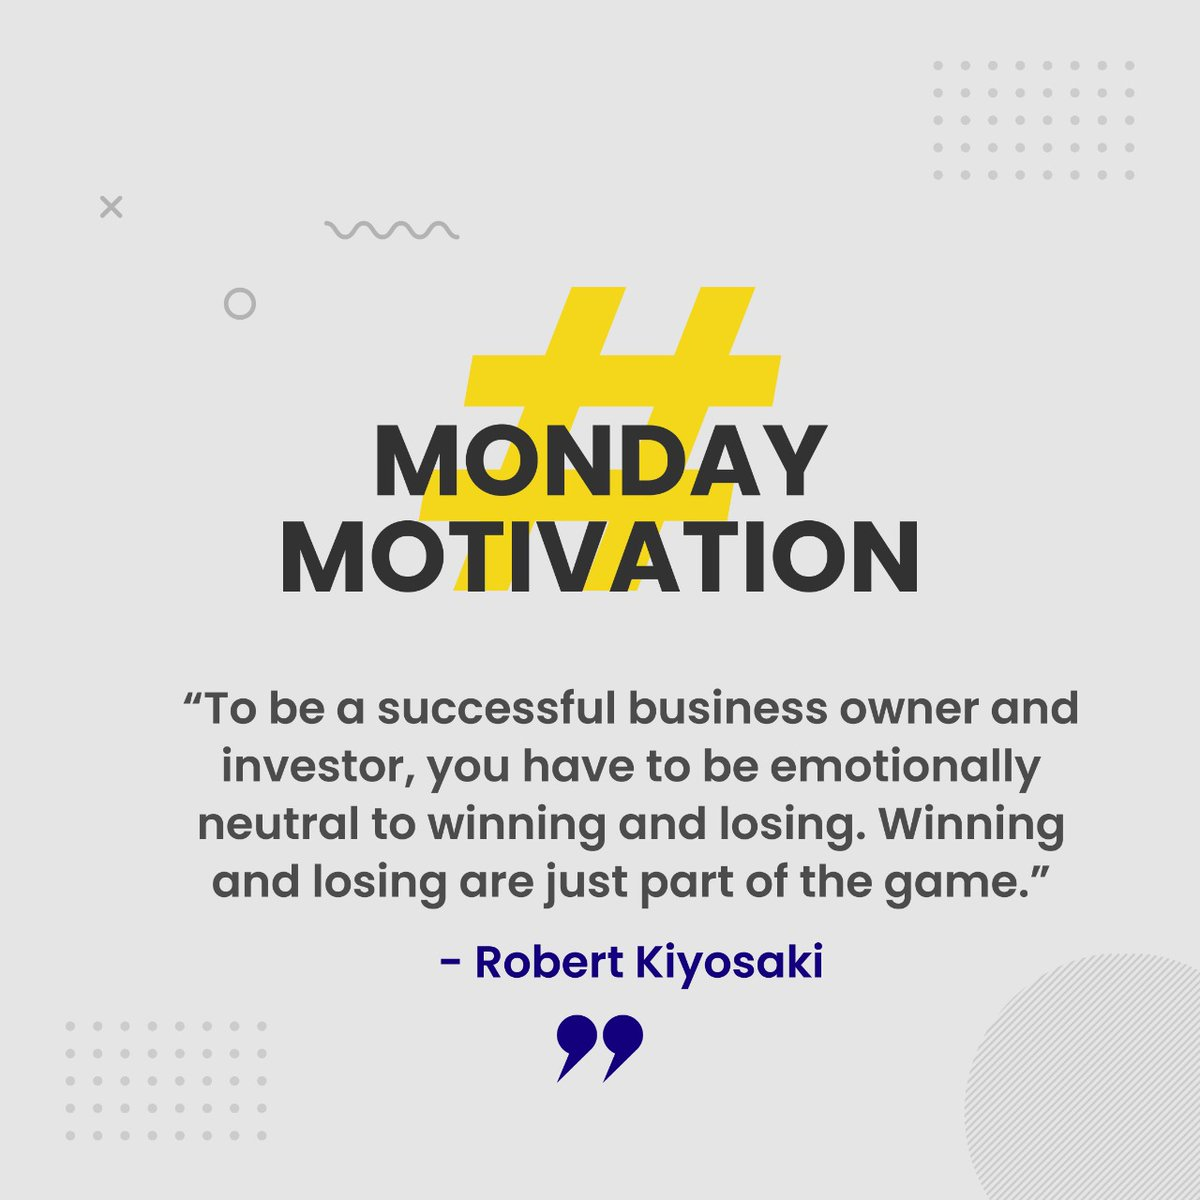 Emotions can trigger irrational decisions that can cause investors money. Those who can tame them, go on to achieve greatness.  #shravanboyapati #mondaymotivation #business #india #knowledge #wisdom #finance #business #robertkiyosakipic.twitter.com/wZjoOnc2dt